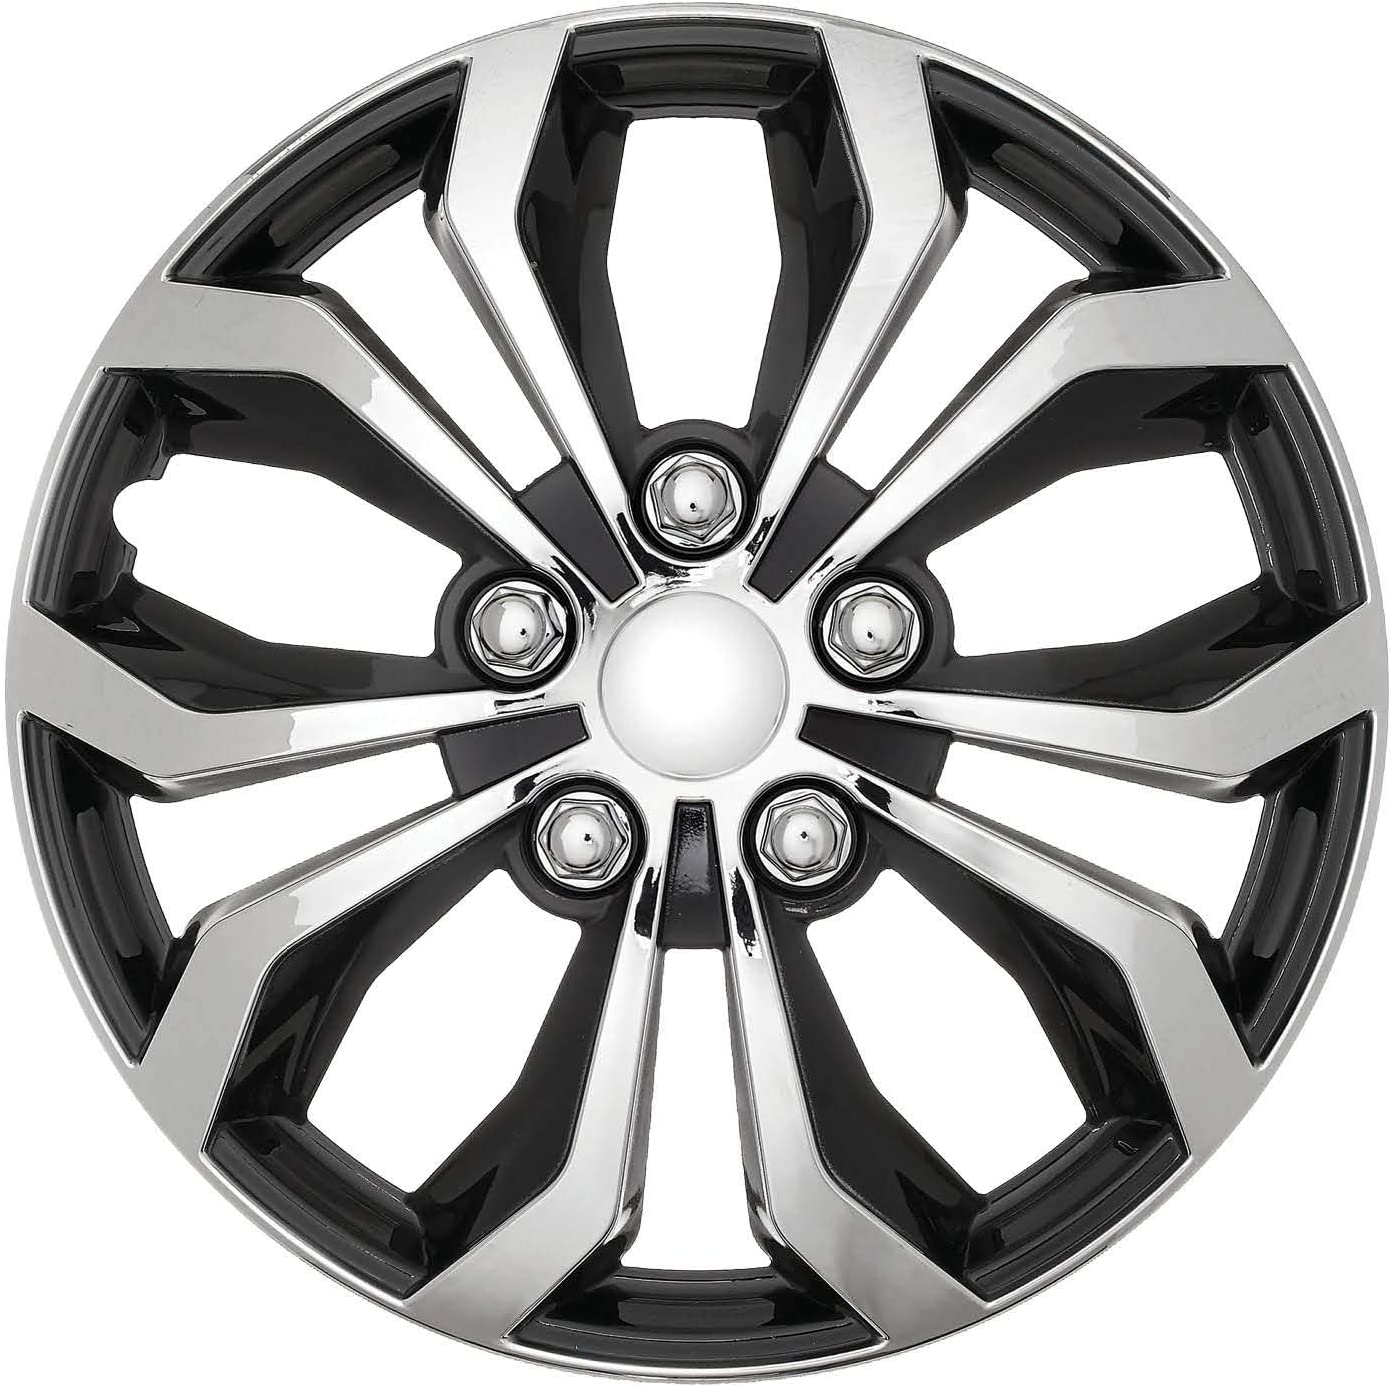 """Set of 4 Hubcaps 17 Swiss Drive Wheel Cover /""""SPA/"""" Chrome and Black ABS Easy to Install Universal"""